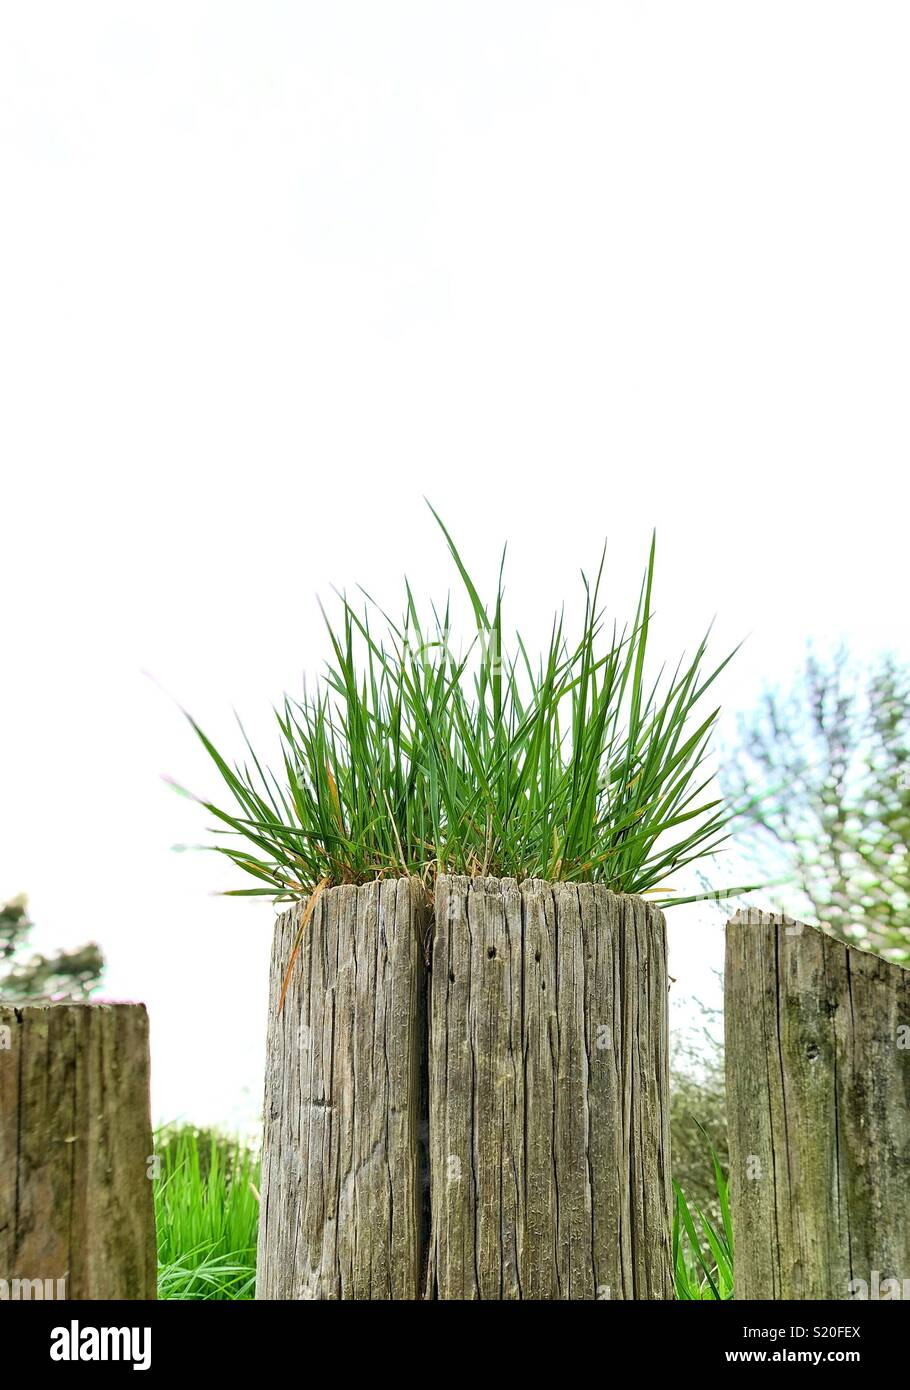 Grass growing out of the top of a fence post - Stock Image